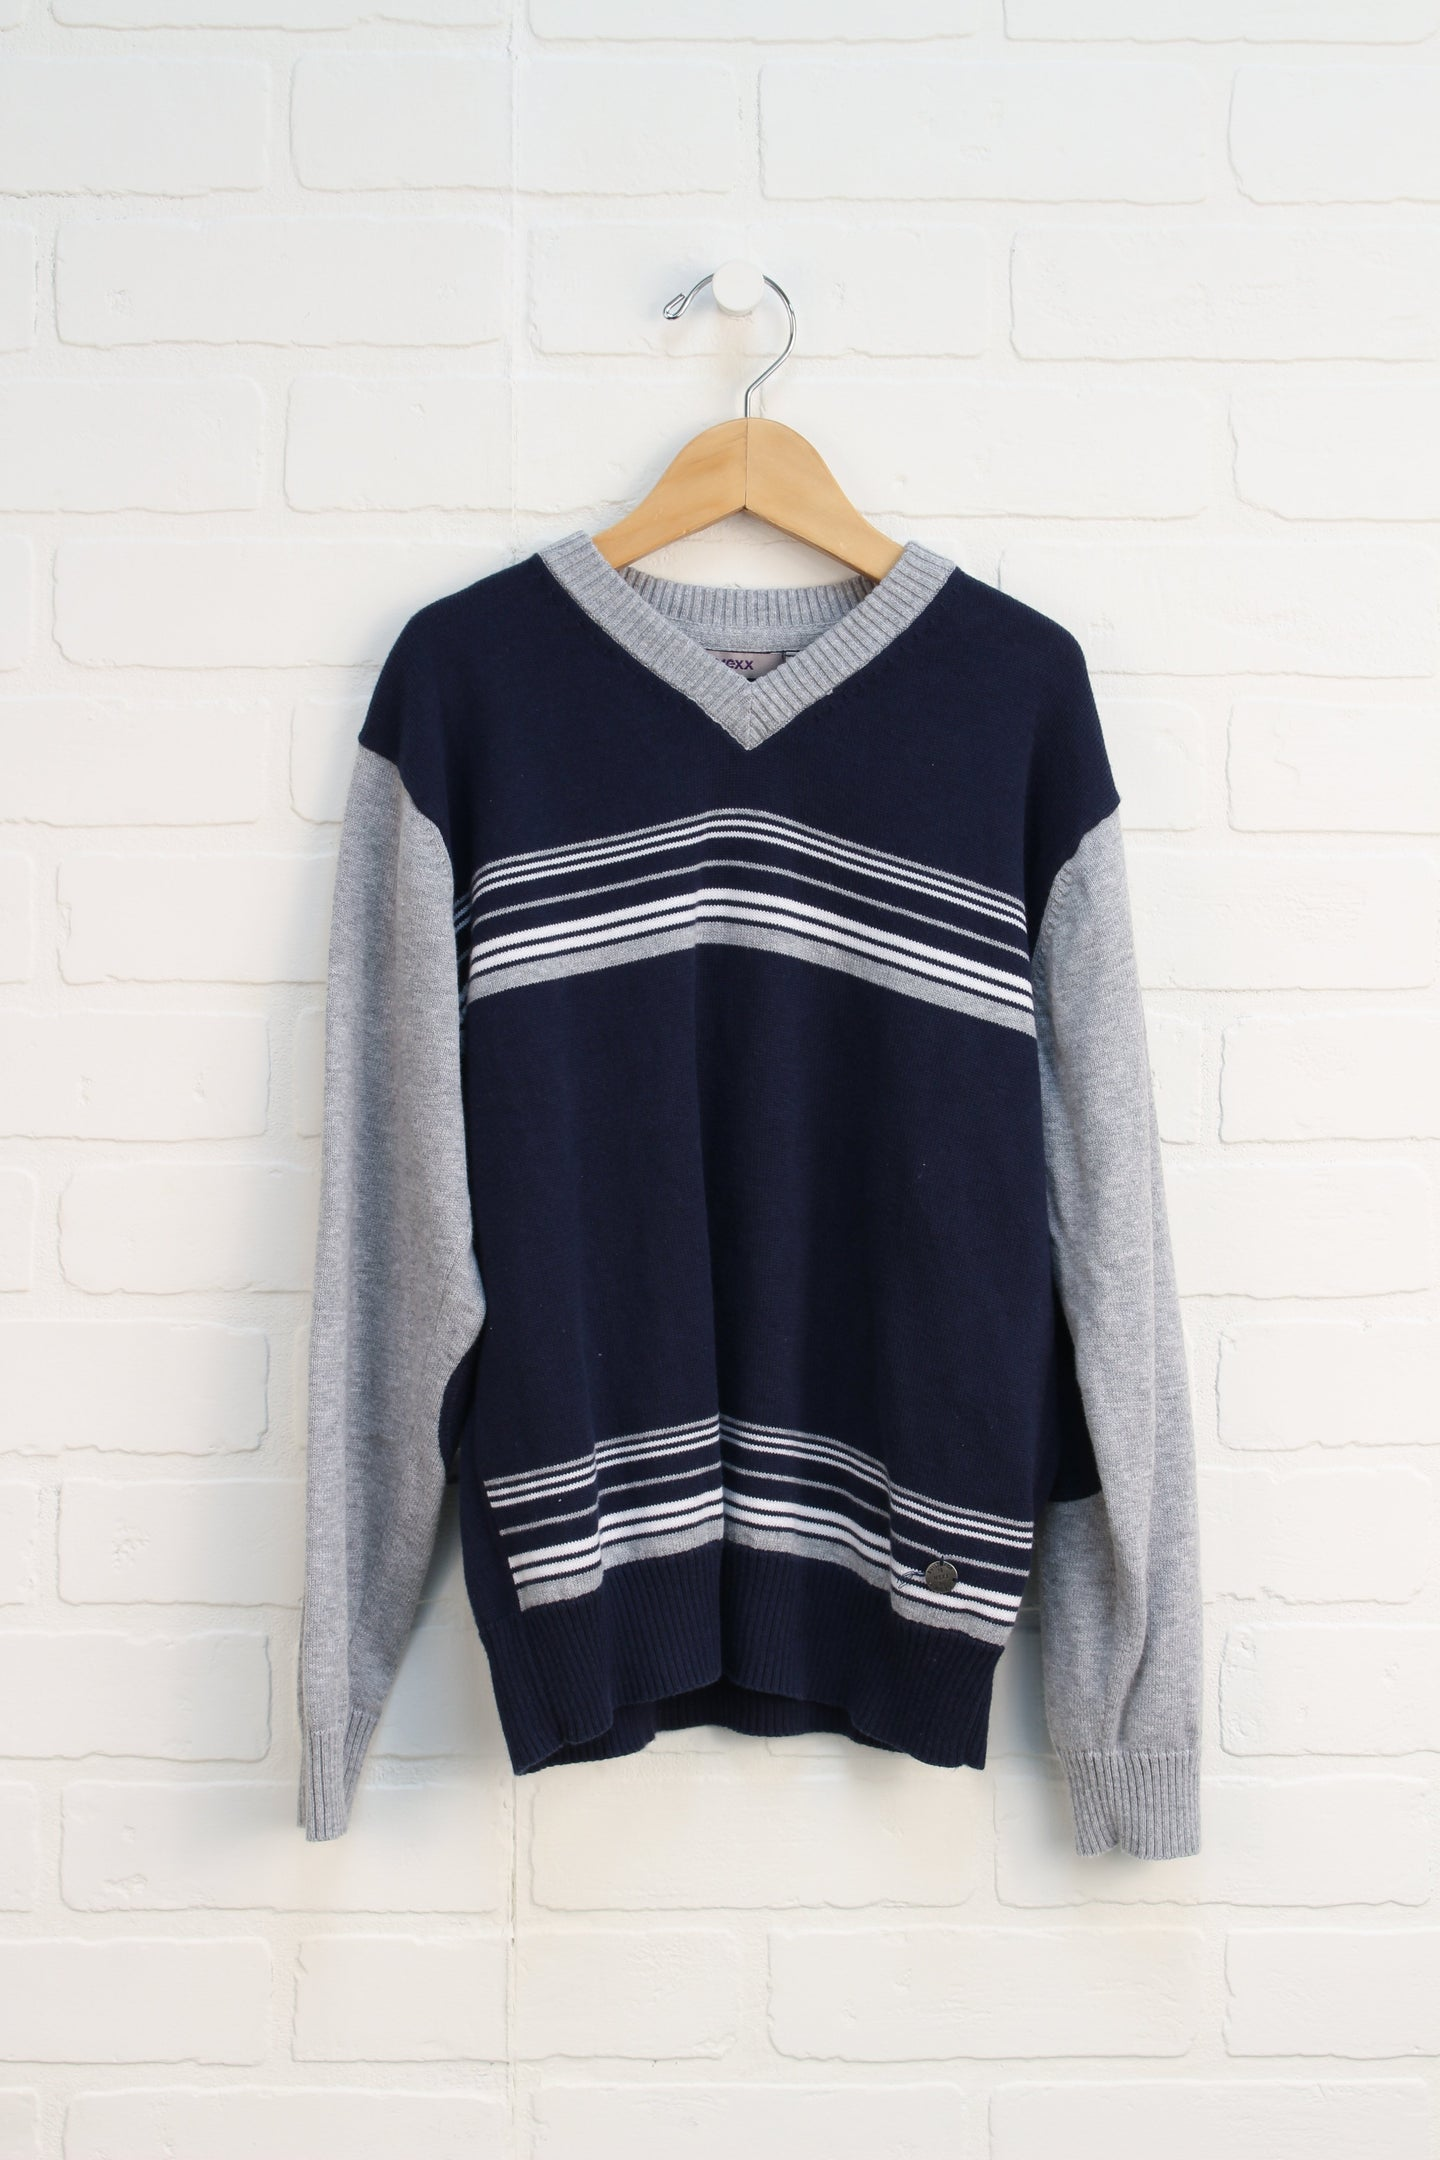 Heathered Grey + Navy V-Neck Sweater (Size XL/9-10)